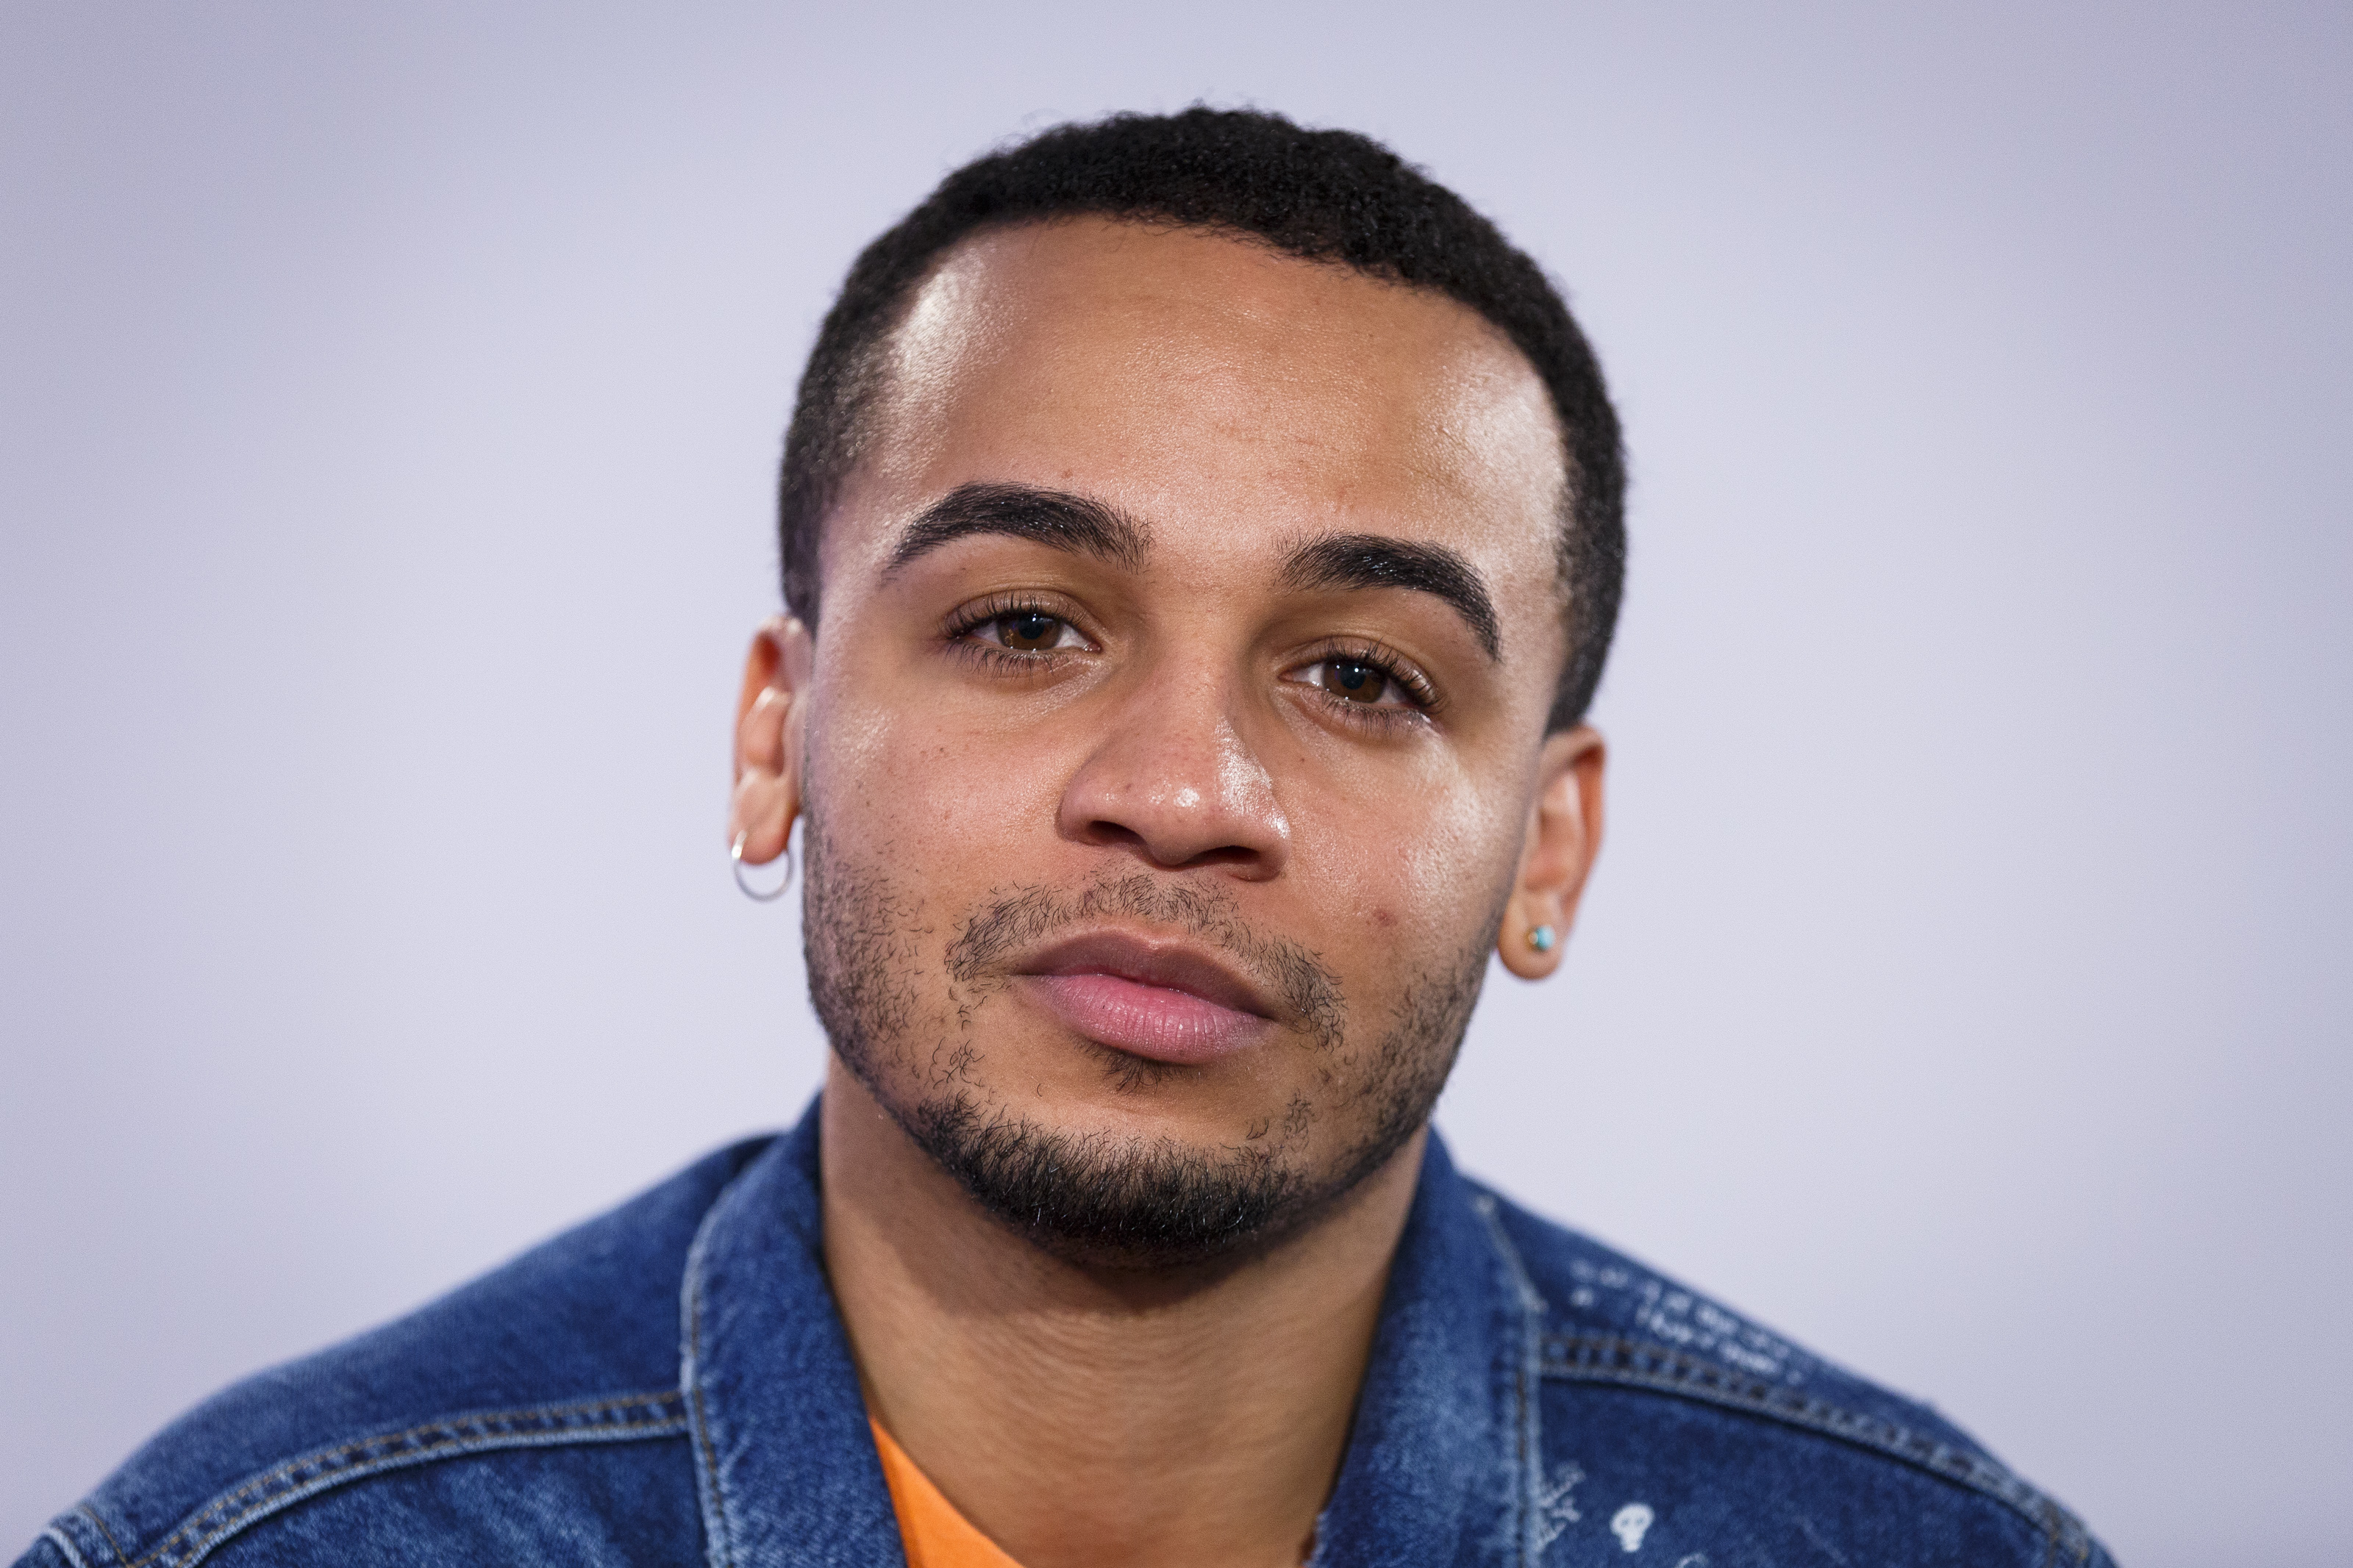 Aston Merrygold set to perform his brand new solo single Precious – and you can watch it here